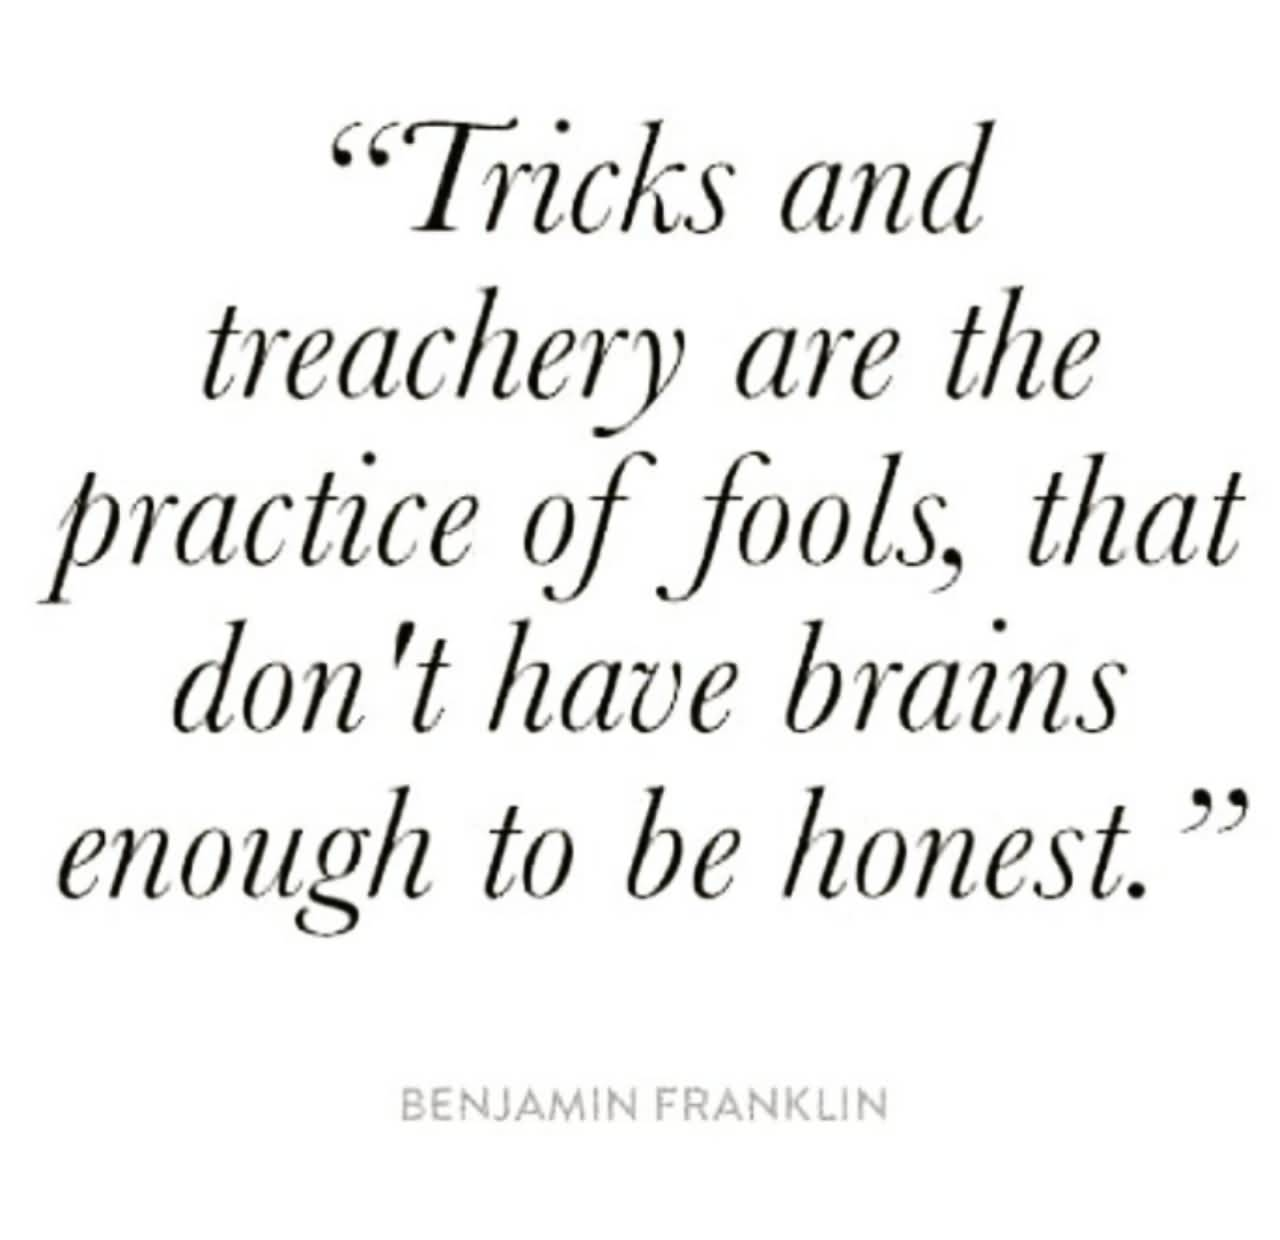 honesty quotes sayings about being honest tricks and treachery are the practice of fools that don t have brains enough